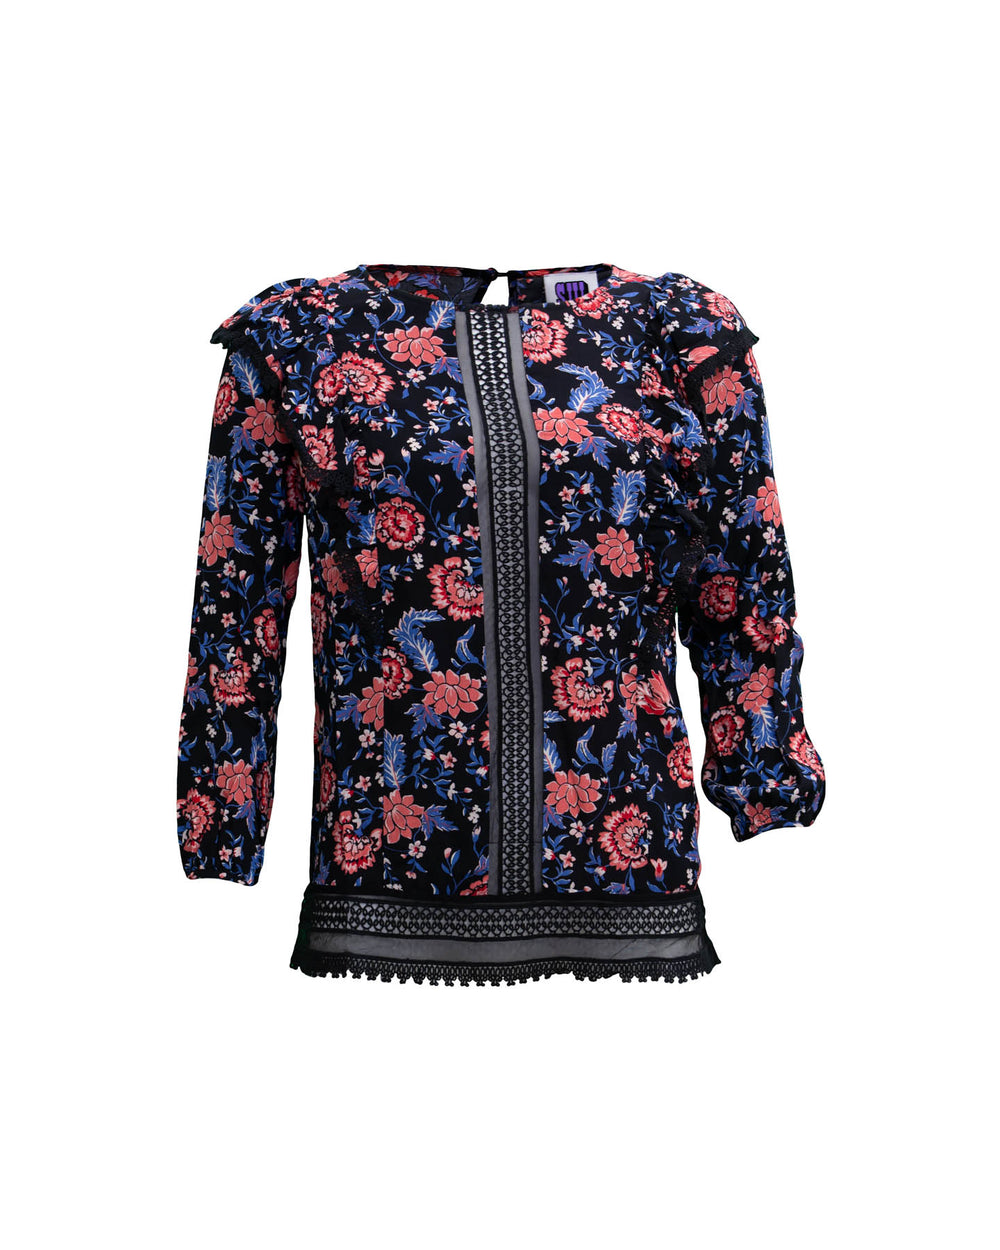 Sui by Anna Sui Shirts